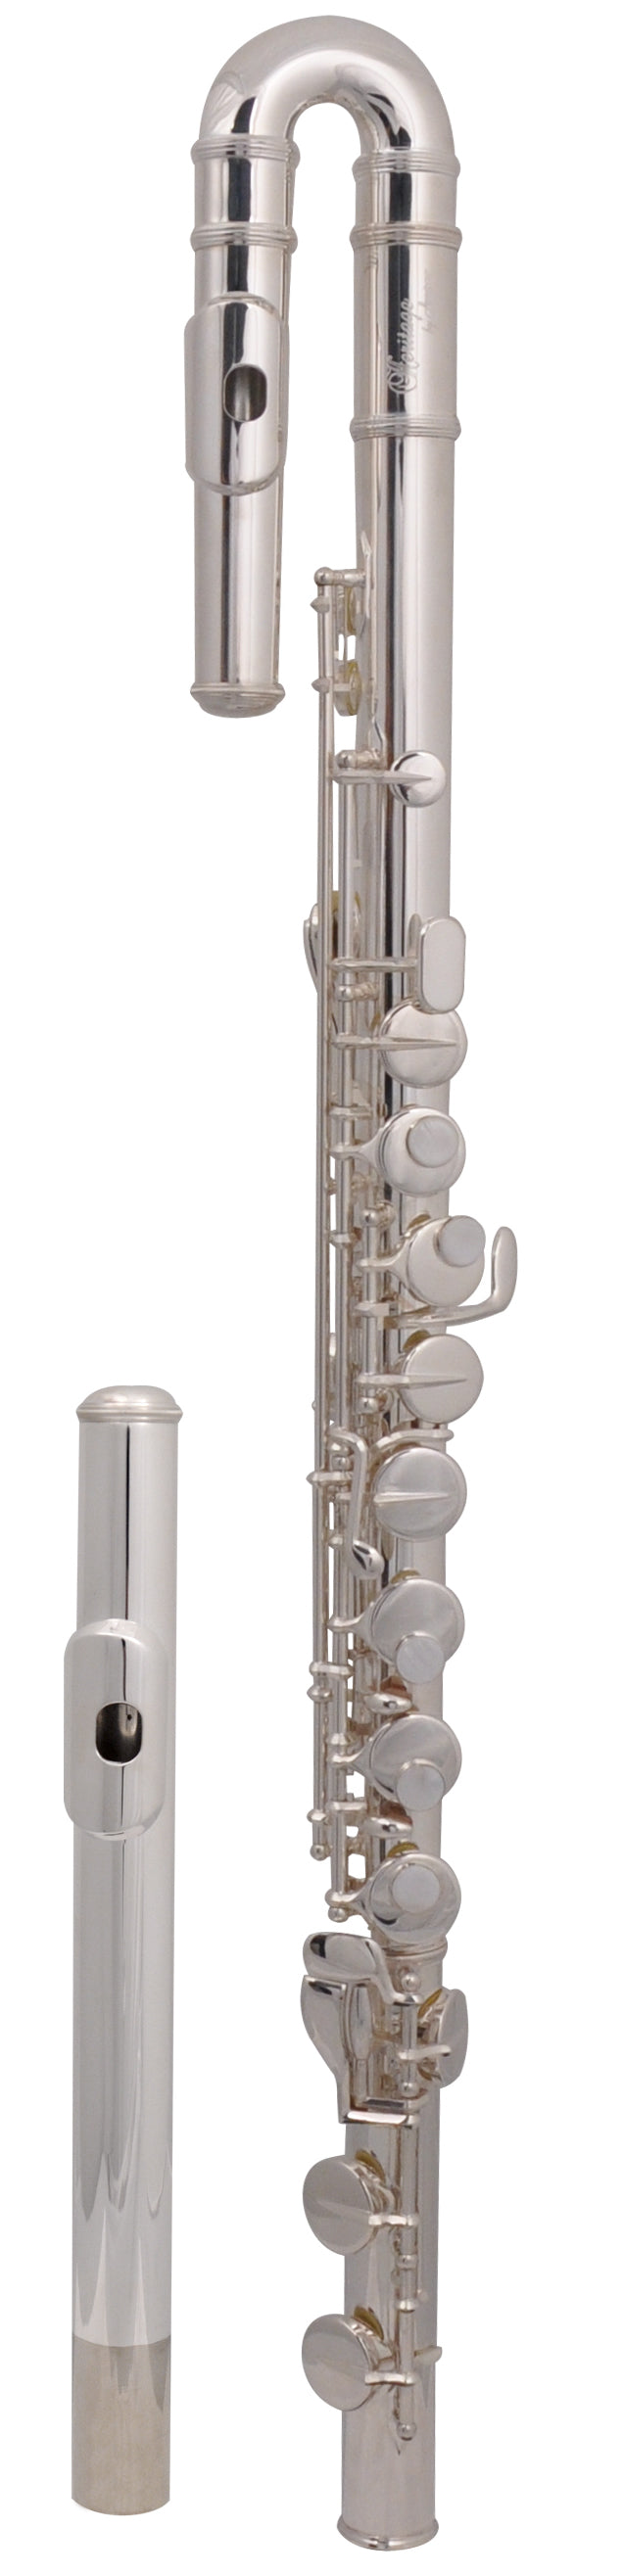 Armstrong 703 Heritage Alto Flute - Silver Plated